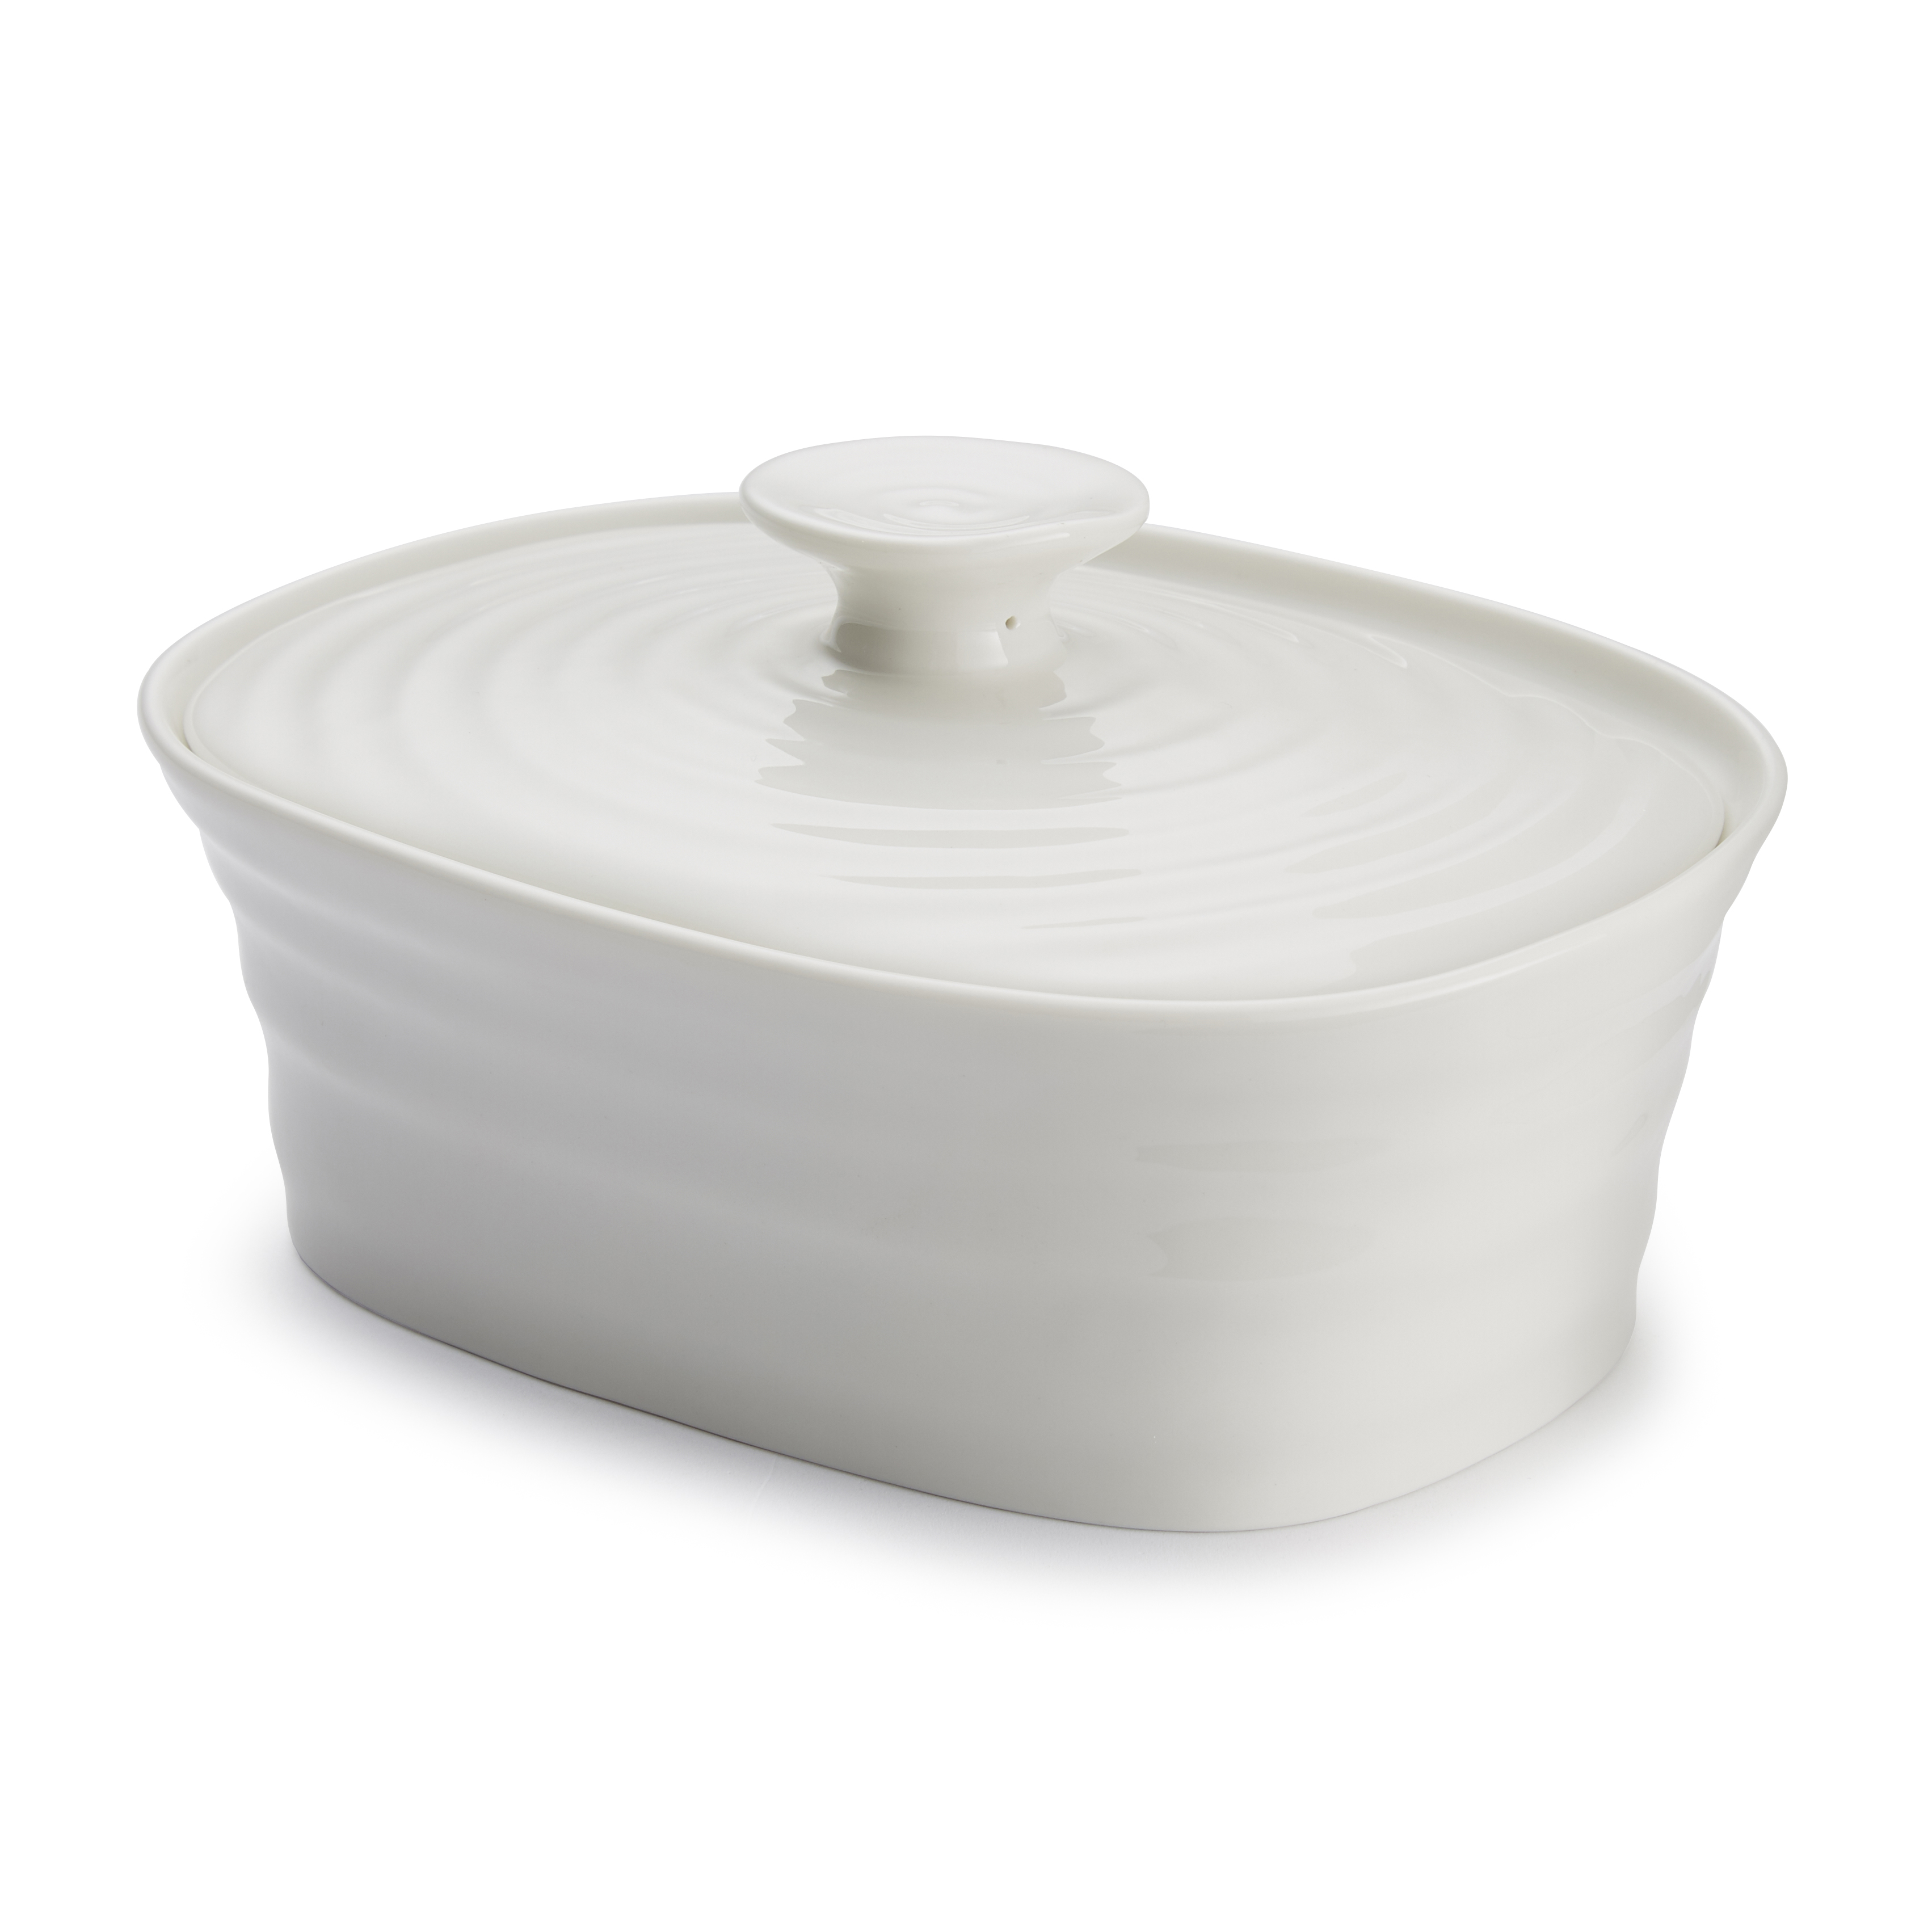 Portmeirion Sophie Conran White Covered Butter image number 1